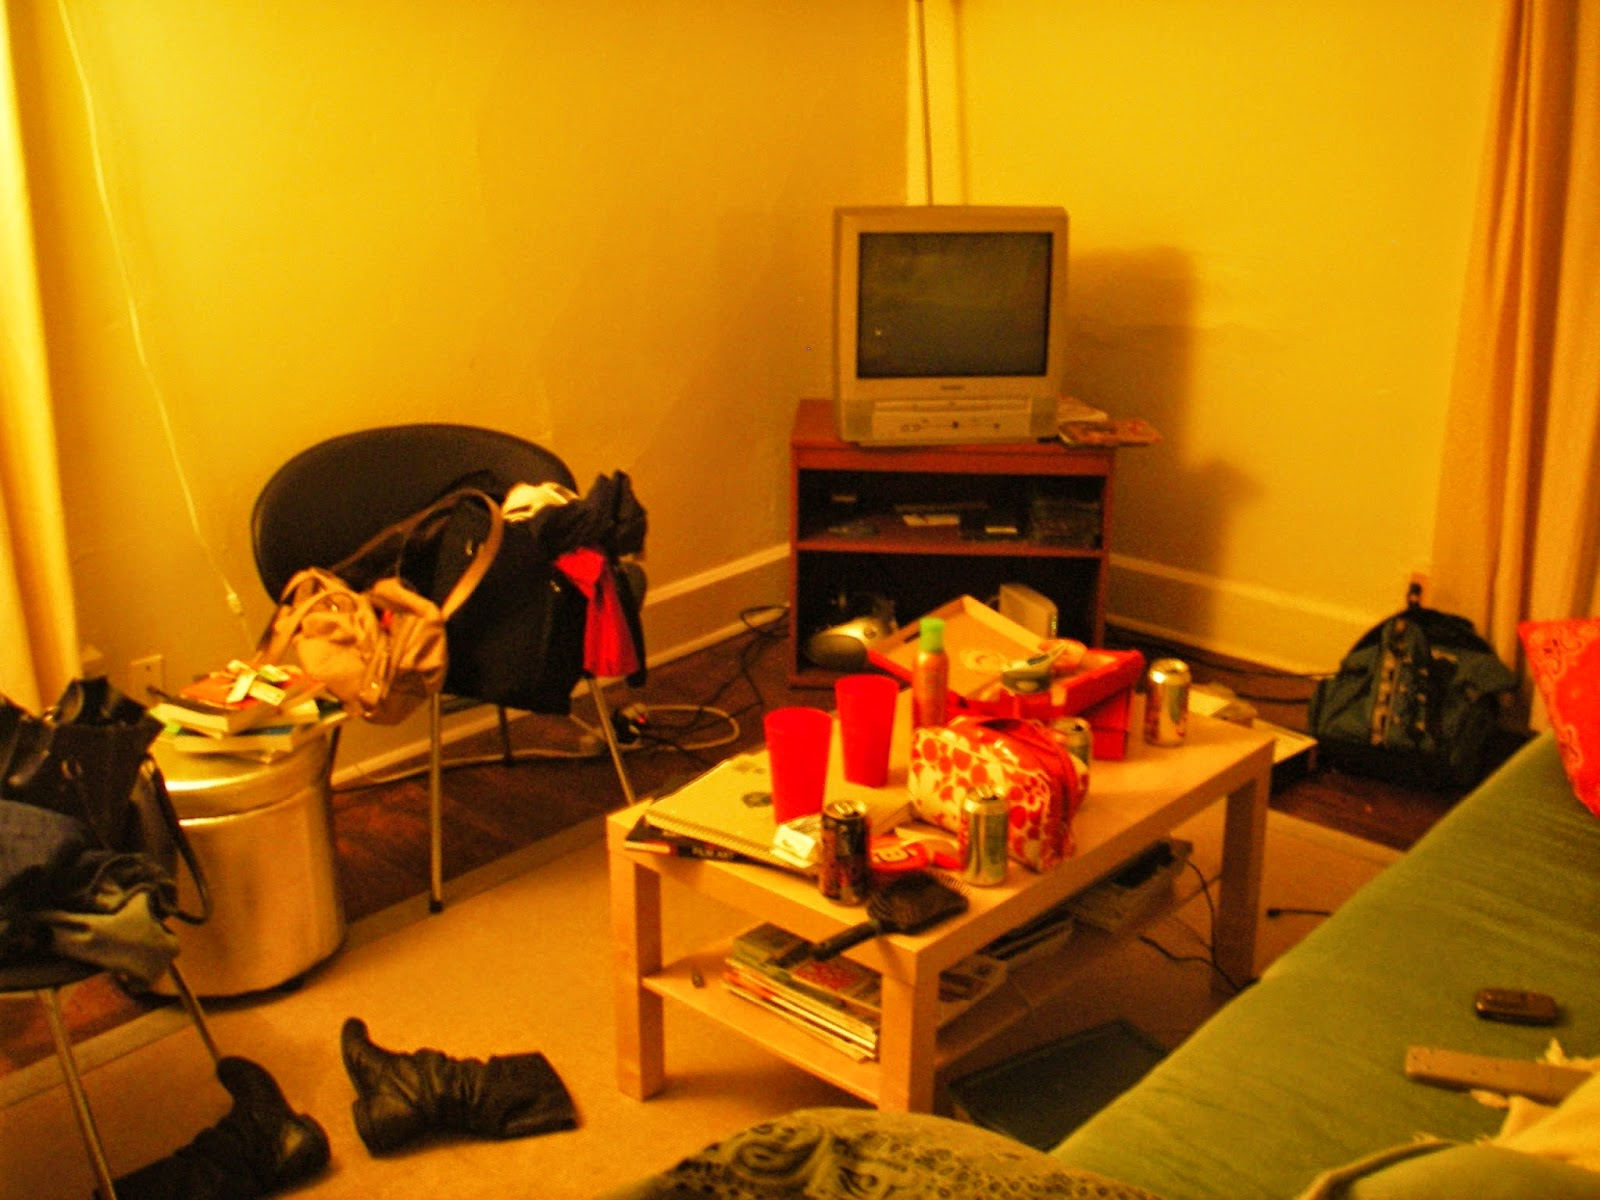 Lower class living room - Wednesday 20 November 2013